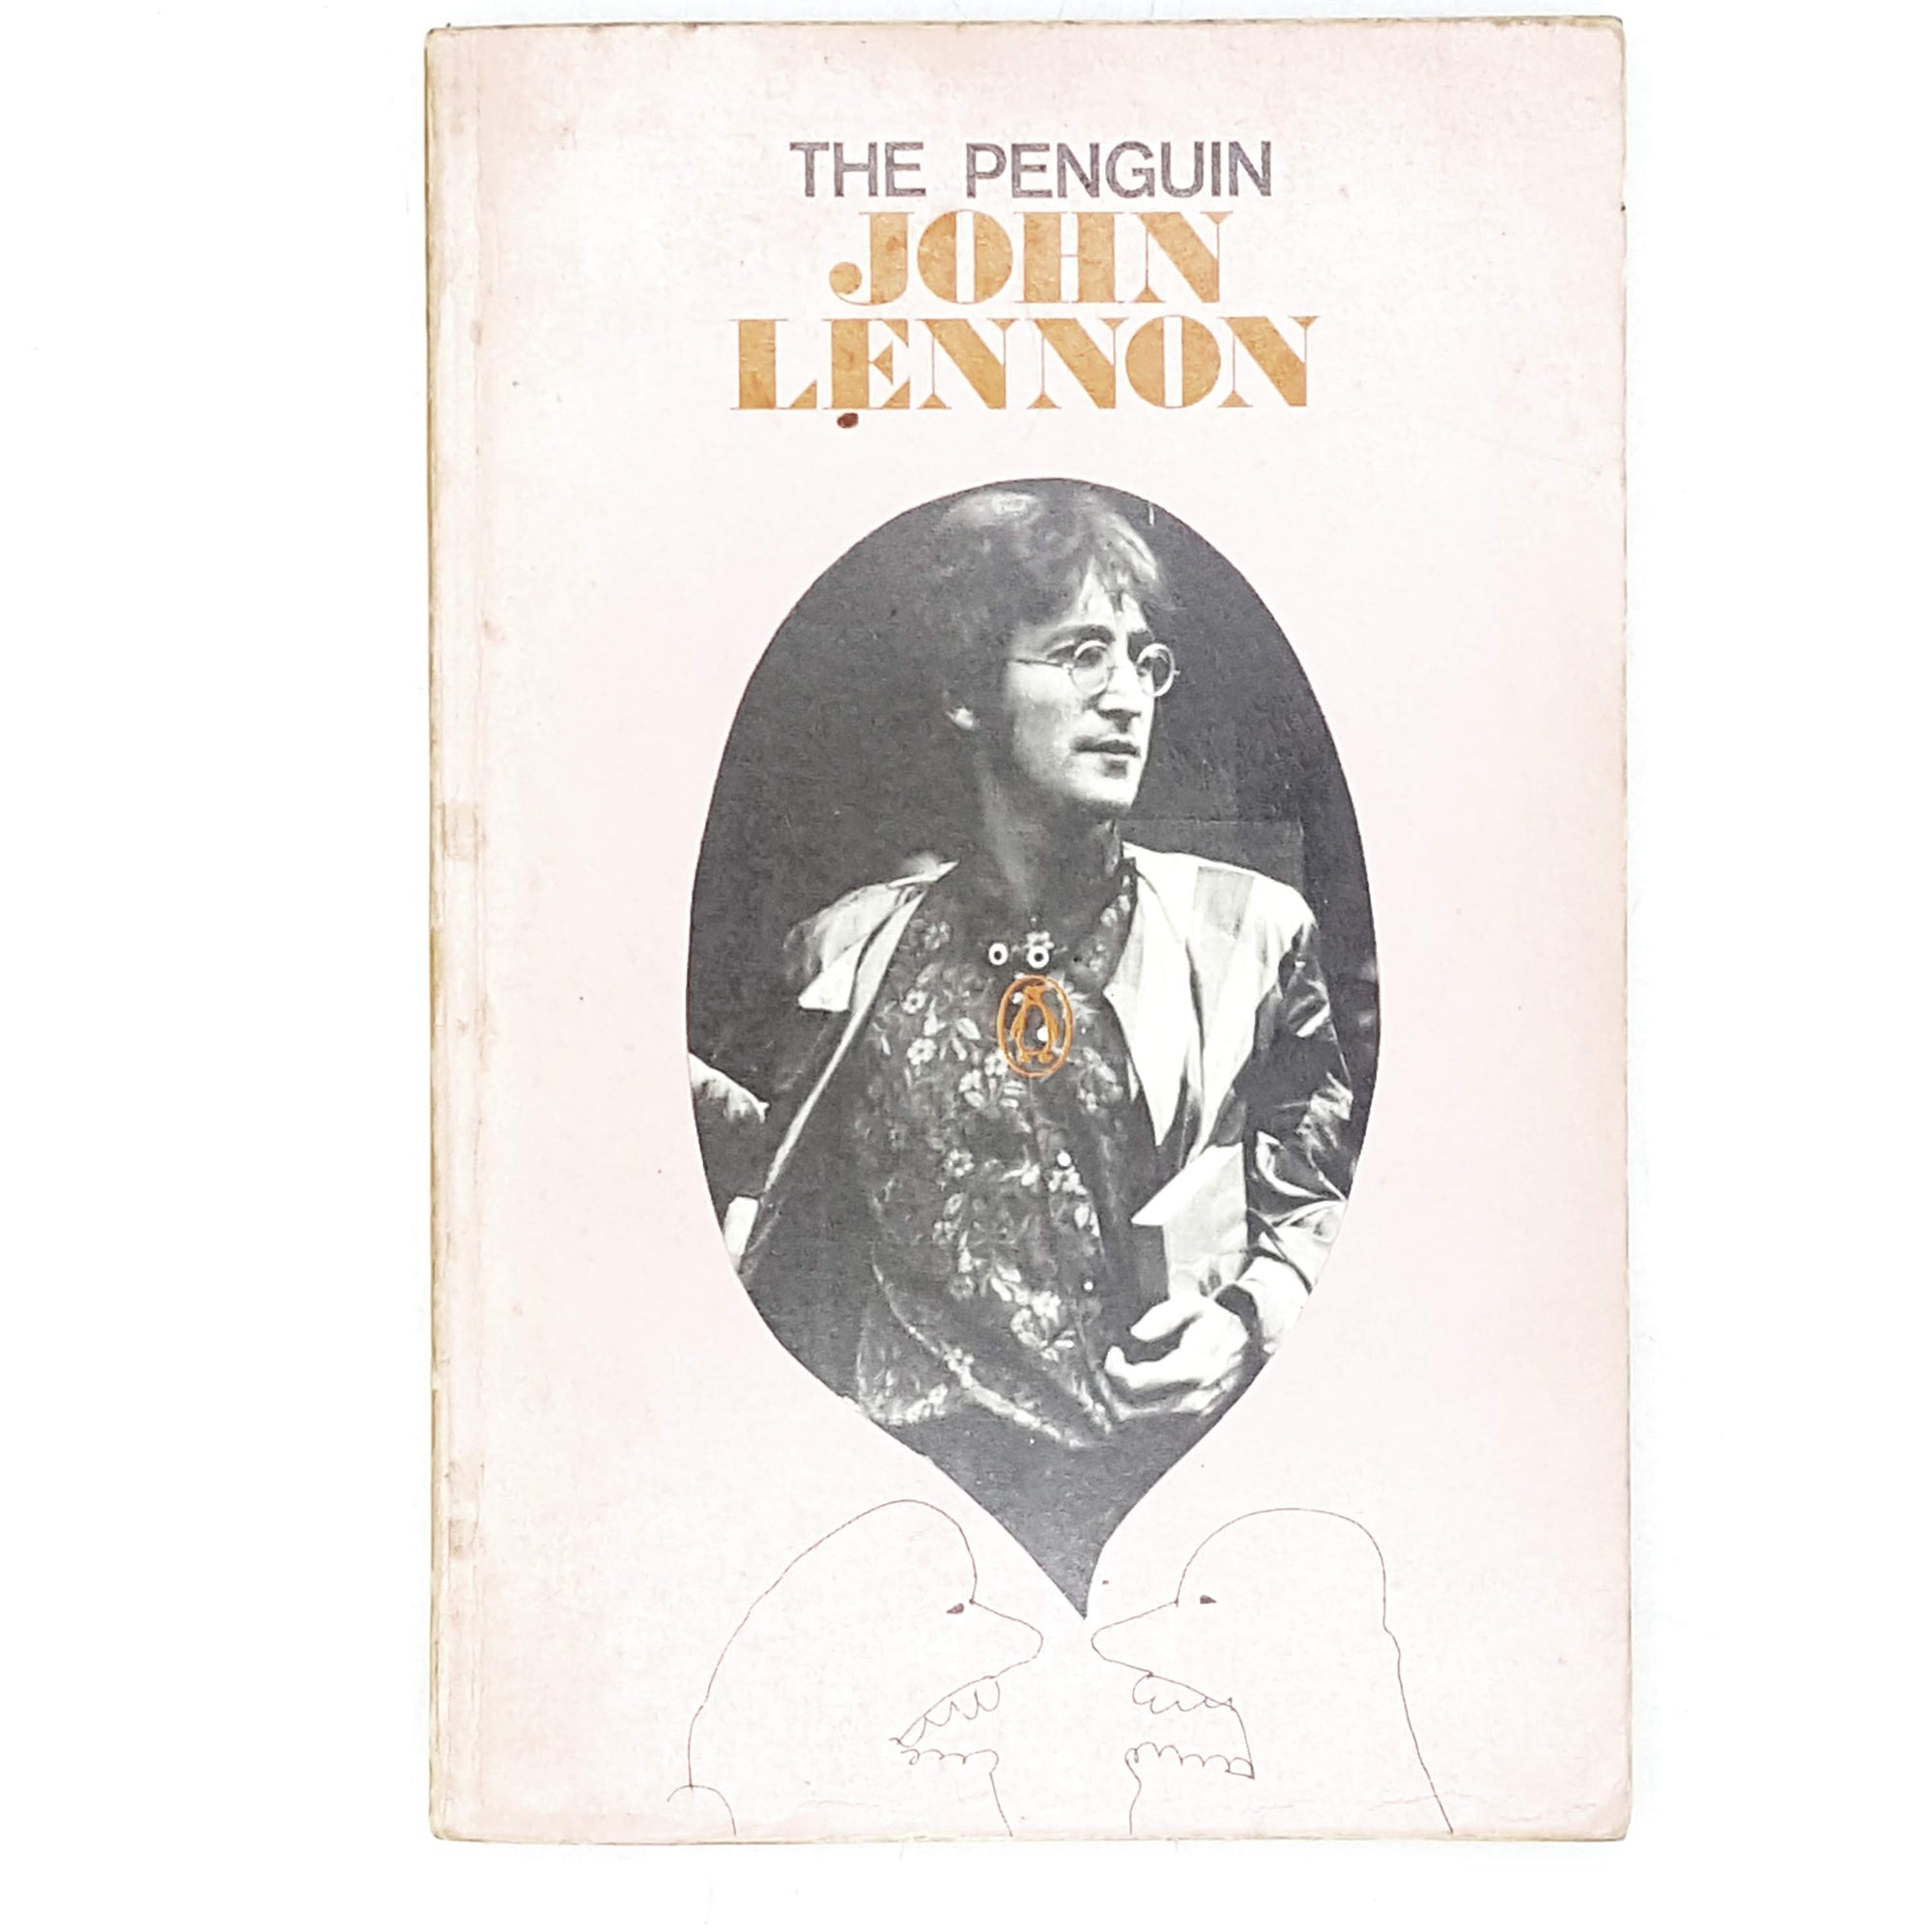 John Lennon's The Penguin John Lennon 1968